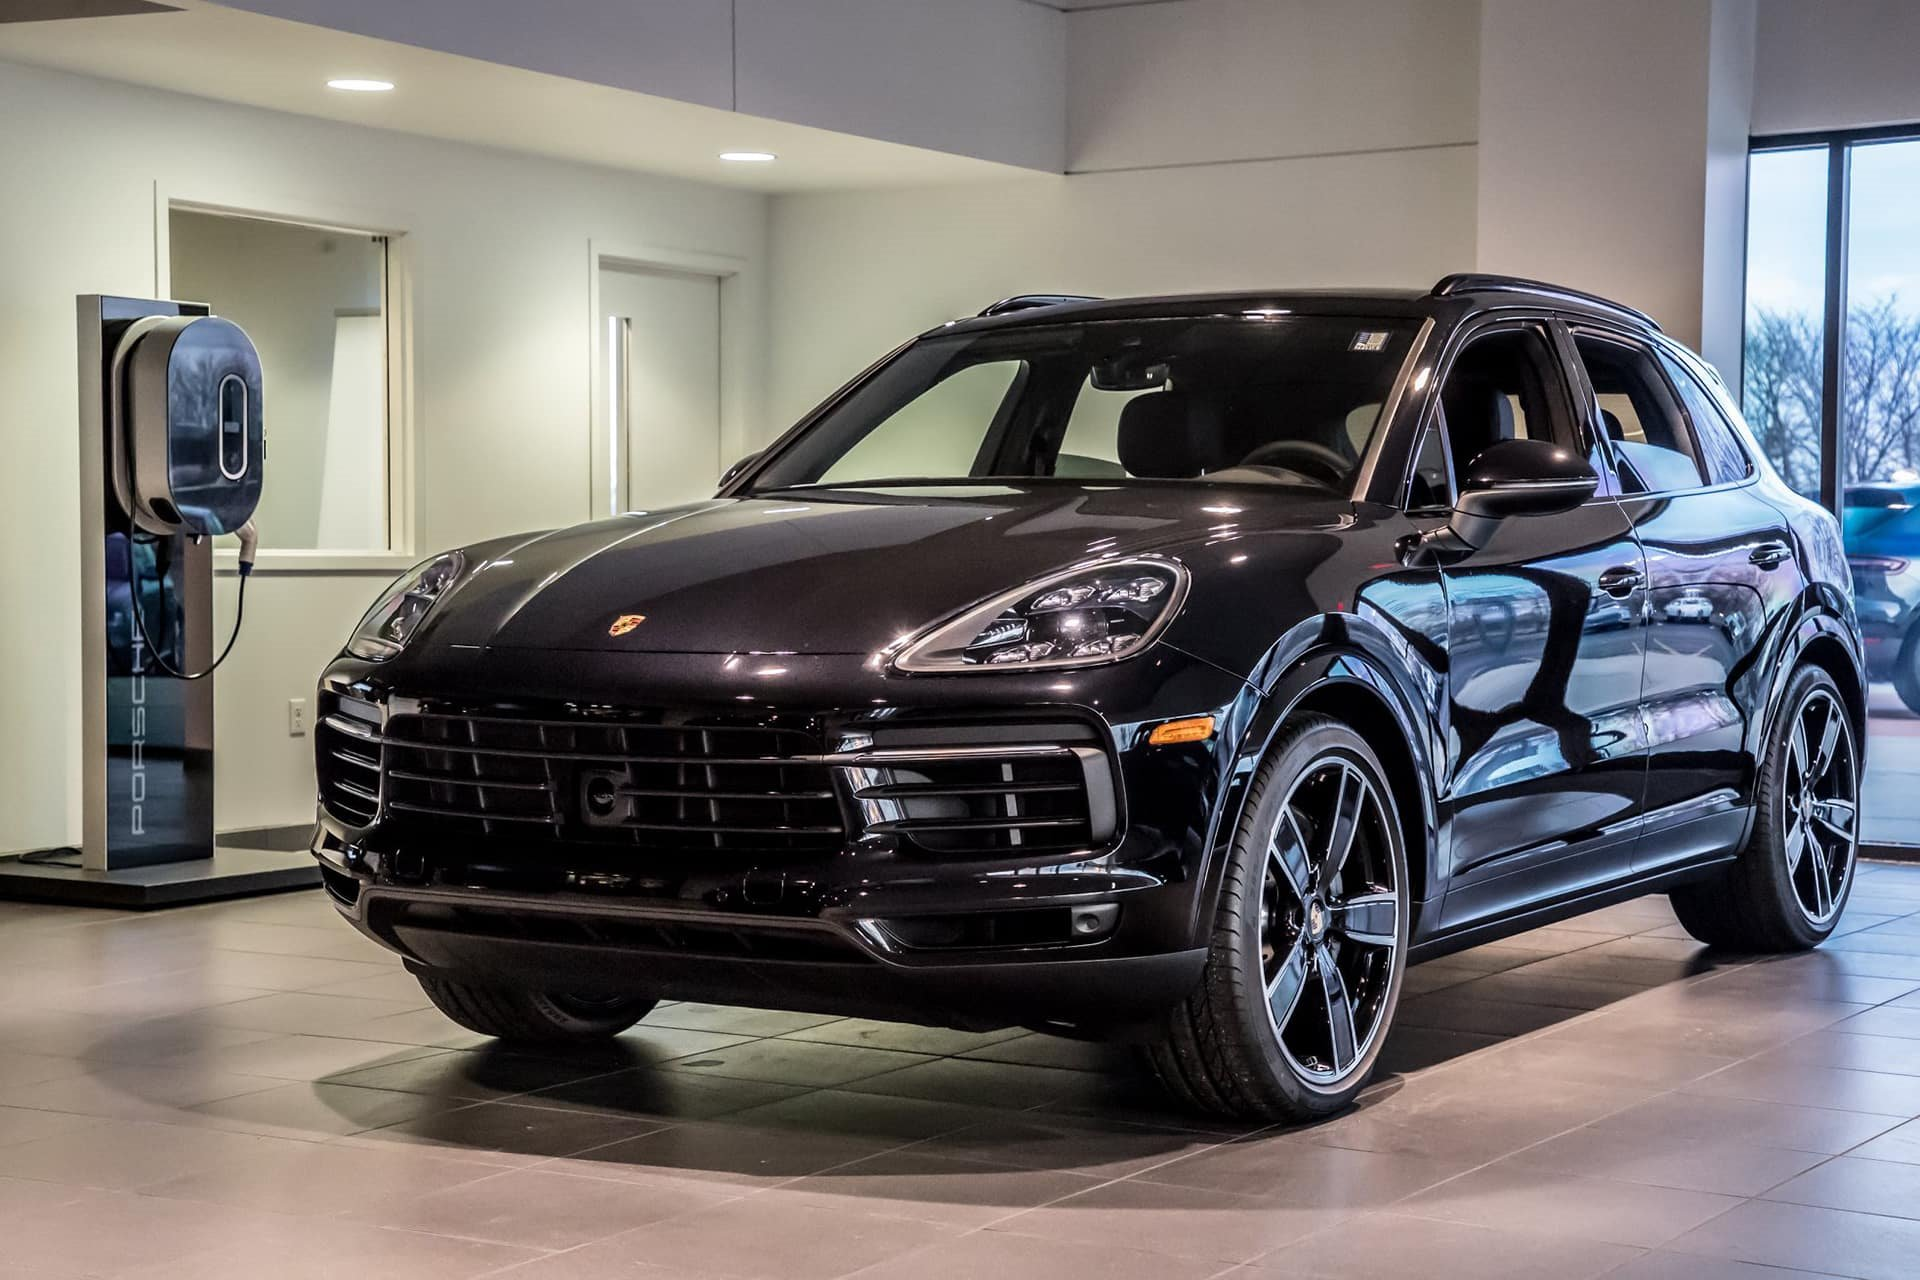 New 2019 Porsche-Cayenne Turbo Cayenne Turbo for sale $124,600 at M and V Leasing in Brooklyn NY 11223 1